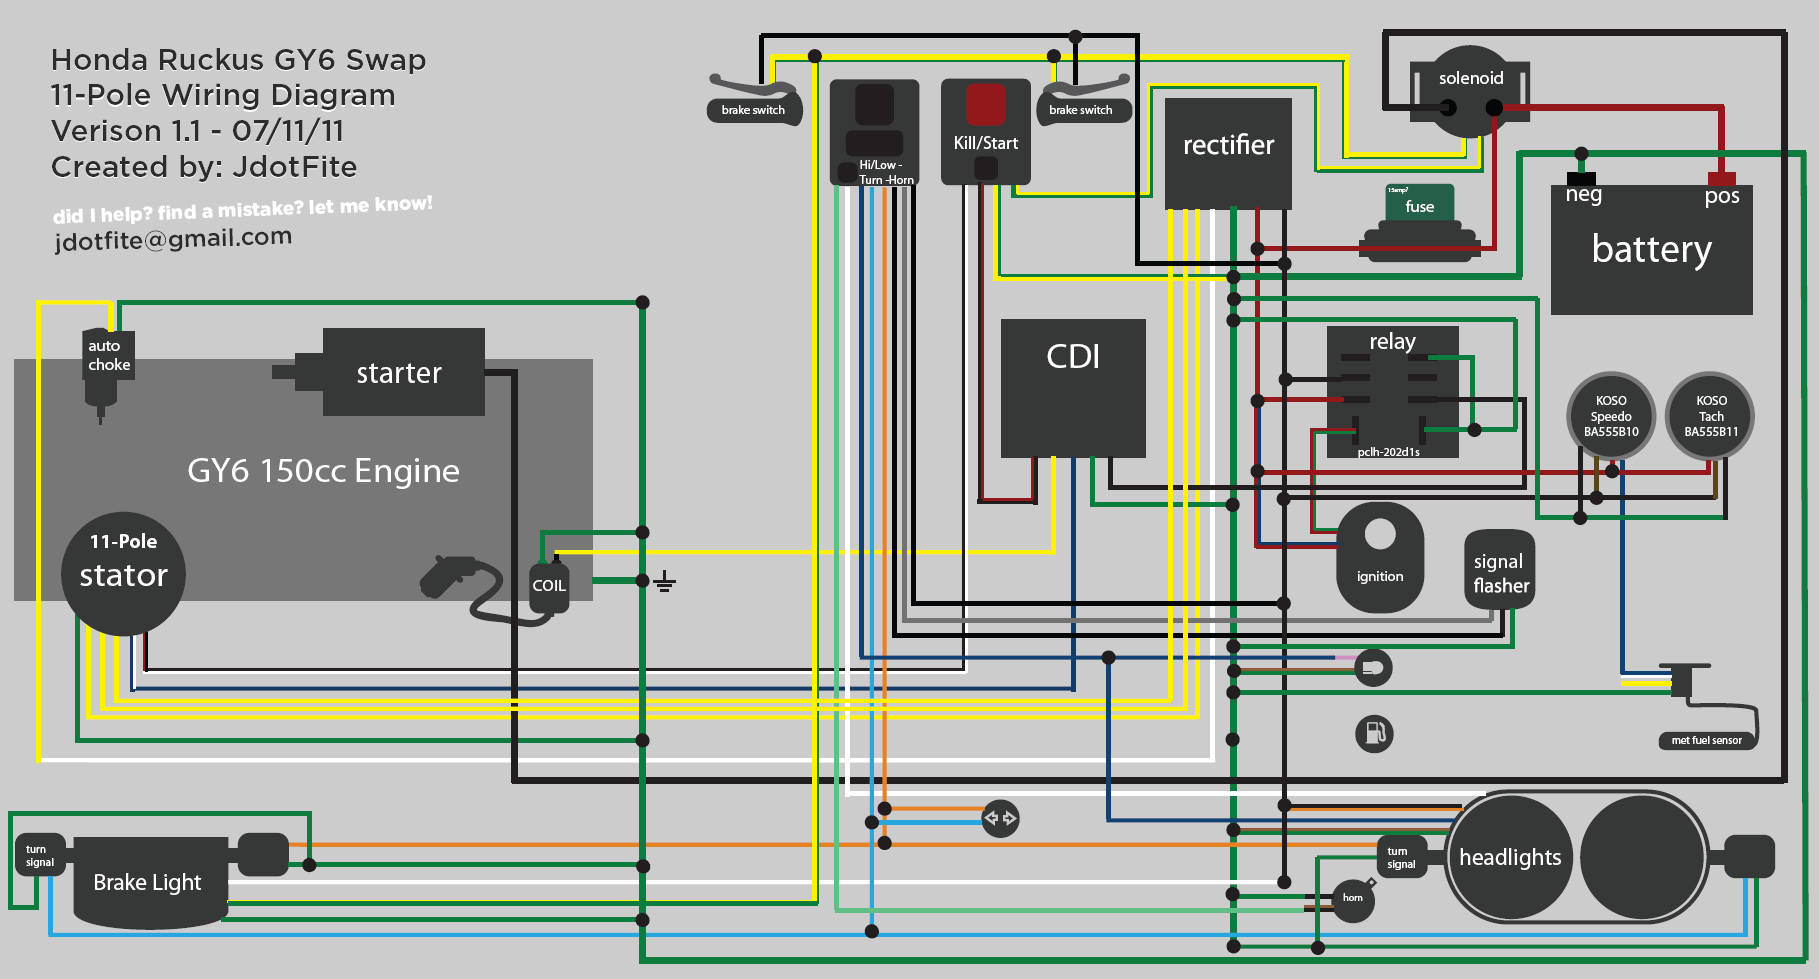 Diagram In Pictures Database 110 Atv Wiring Diagram Magneto Just Download Or Read Diagram Magneto Online Casalamm Edu Mx